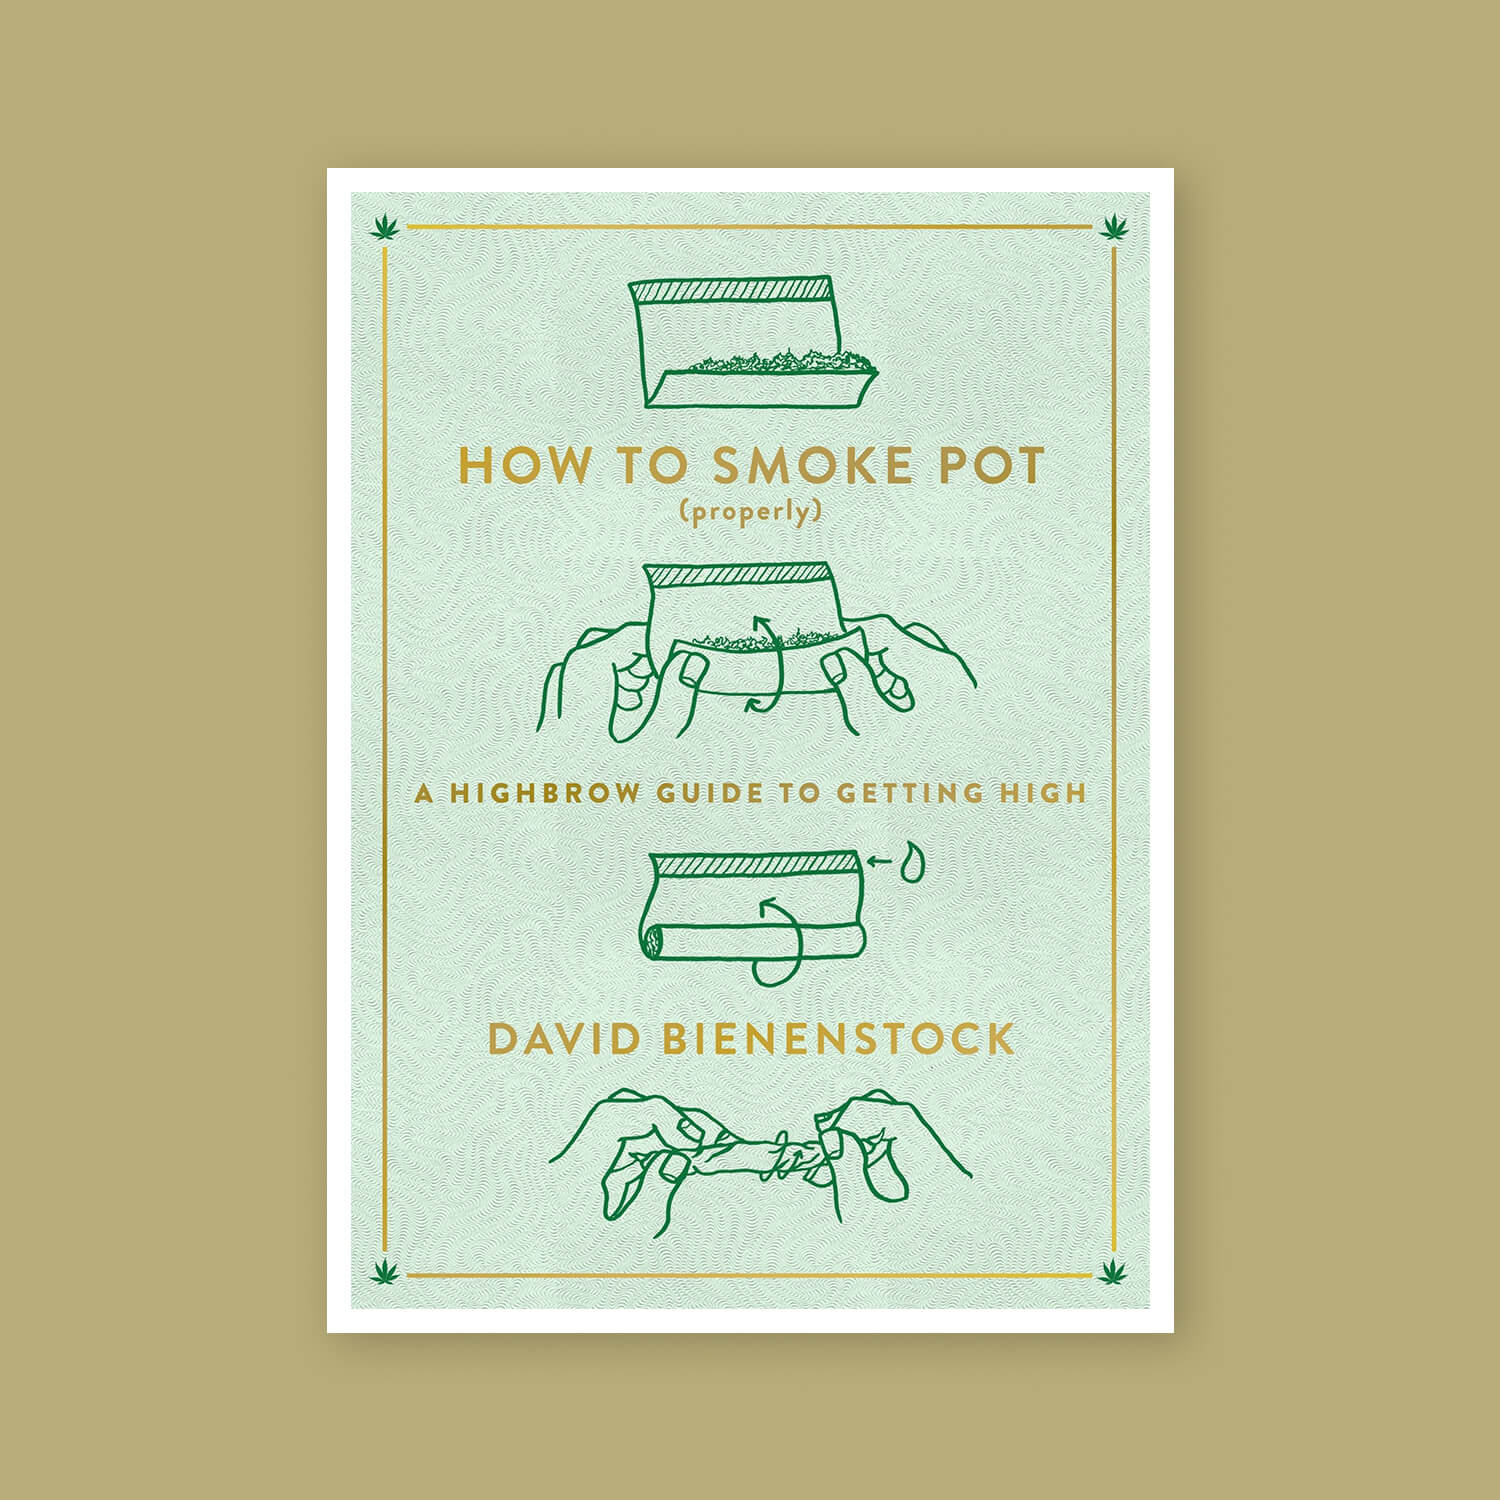 How to smoke pot